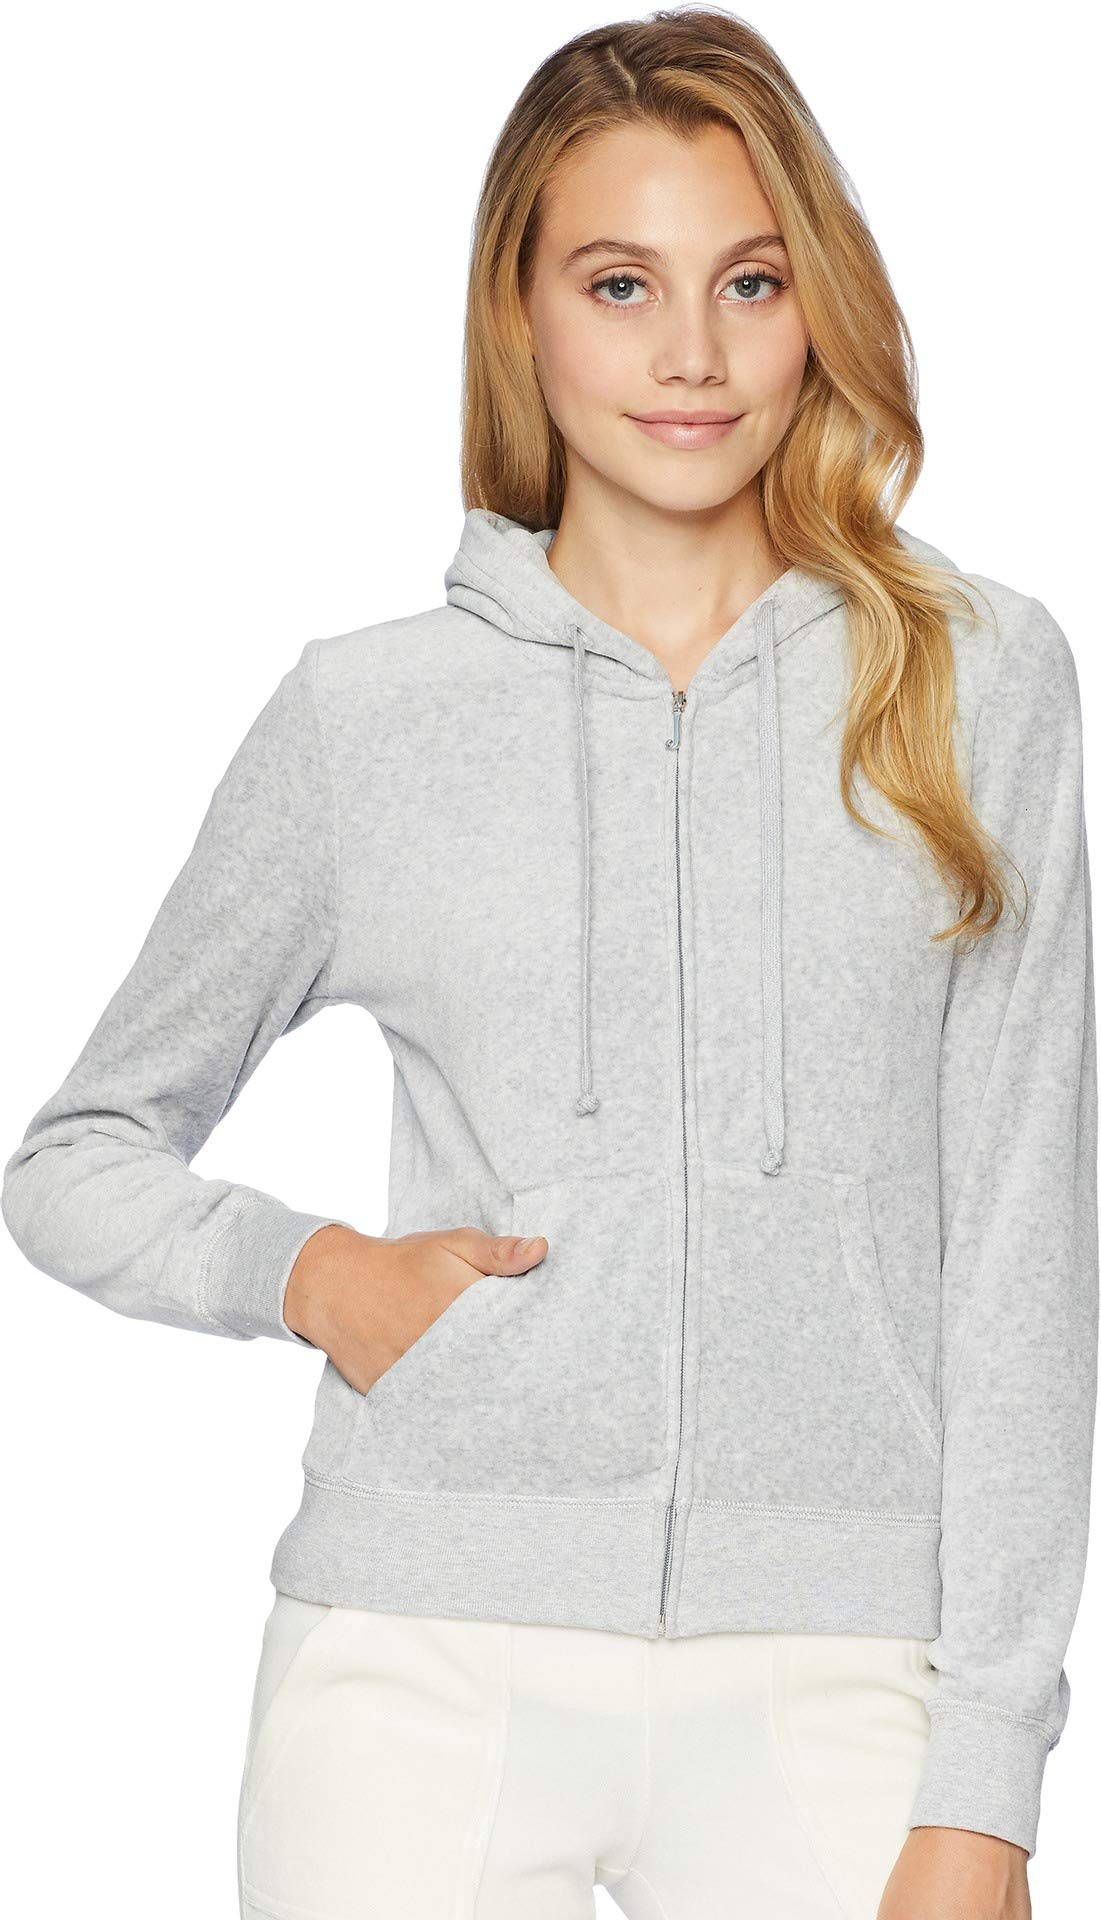 Juicy Couture Black Label Women's Velour Robertson Jacket, Silver Lining, S